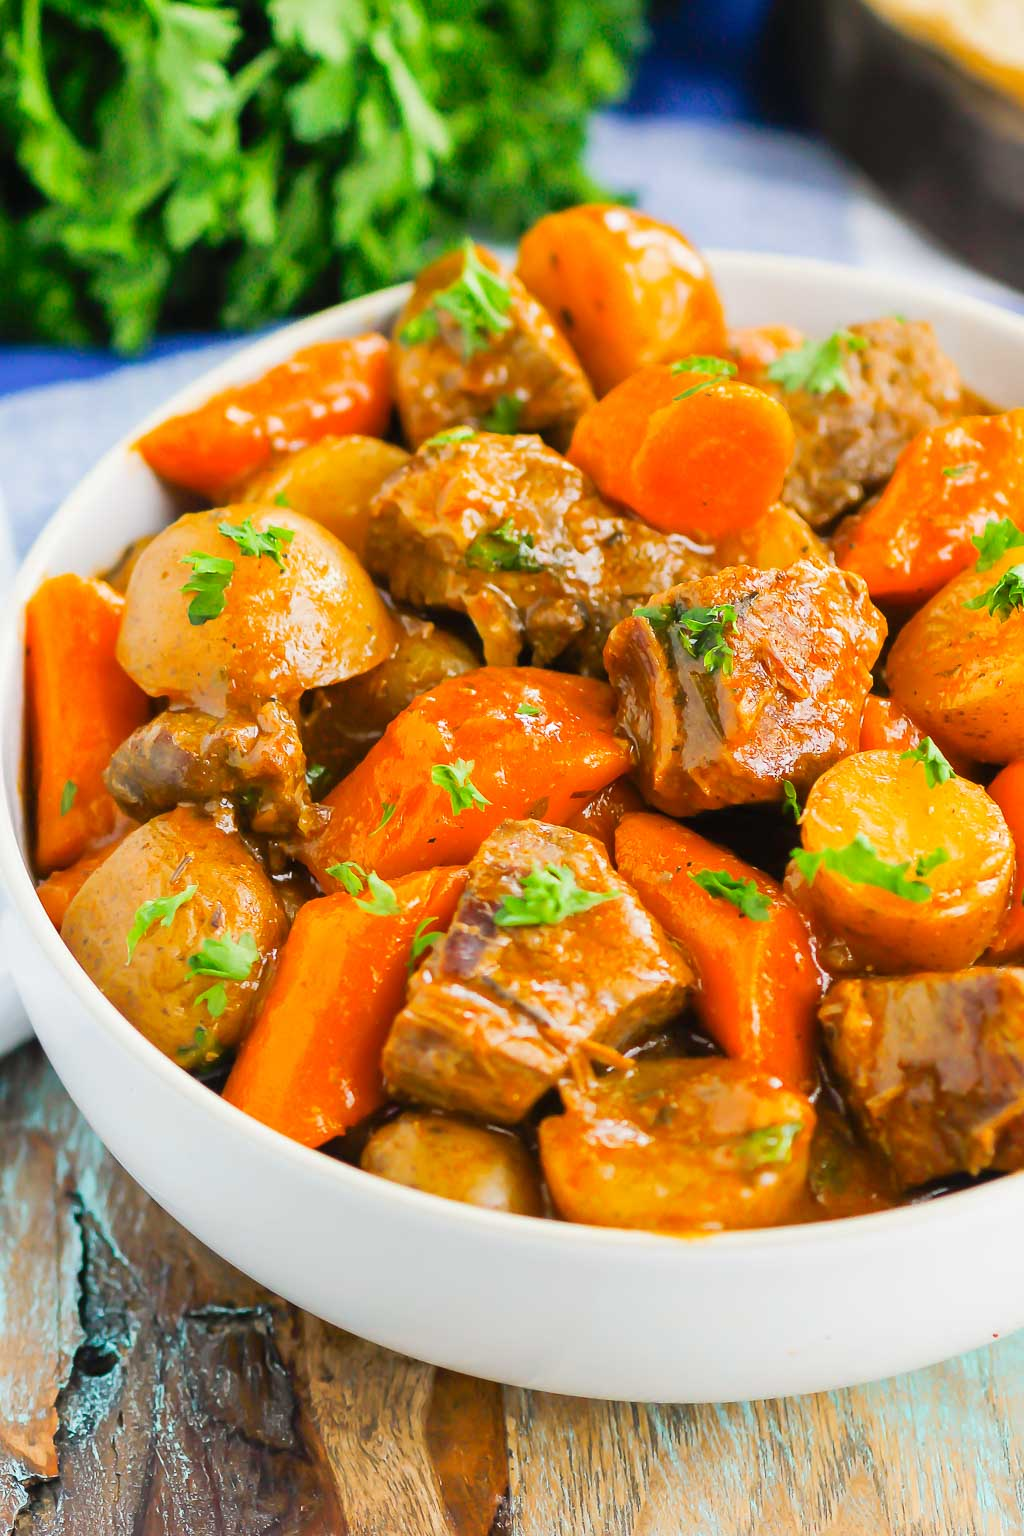 Instant Pot Beef Stew is a simple, hearty dish that's full of cozy flavors. Tender beef, potatoes and carrots are tossed in a savory gravy that's ready in less than an hour. This easy meal will quickly become a dinner time favorite all year long!